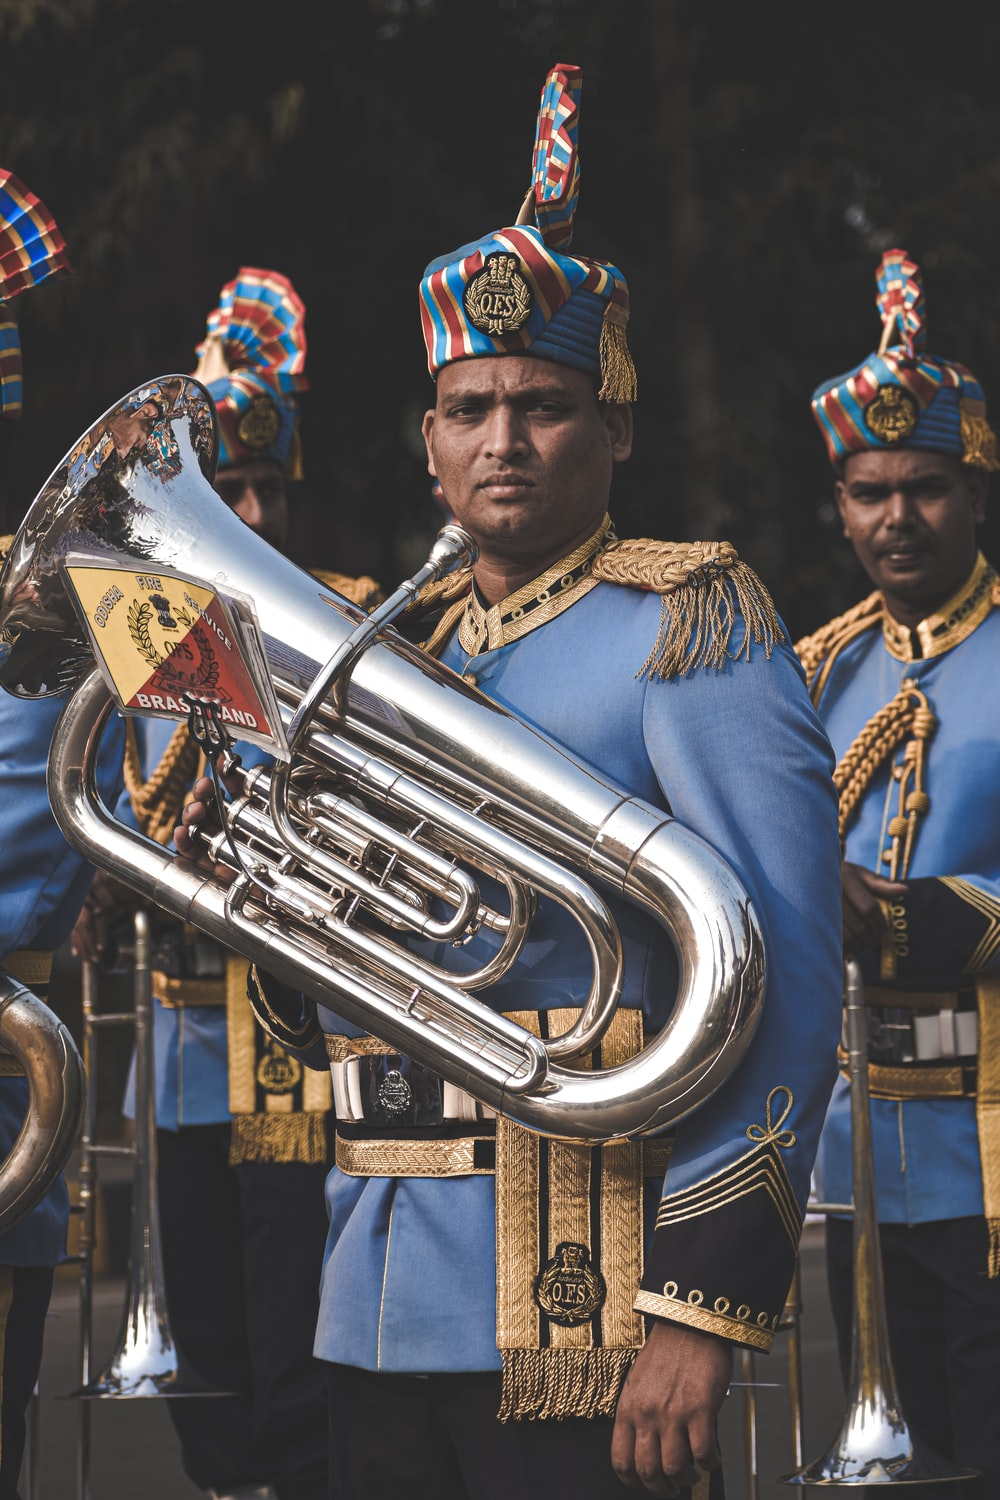 man in gold and blue hat playing trumpet